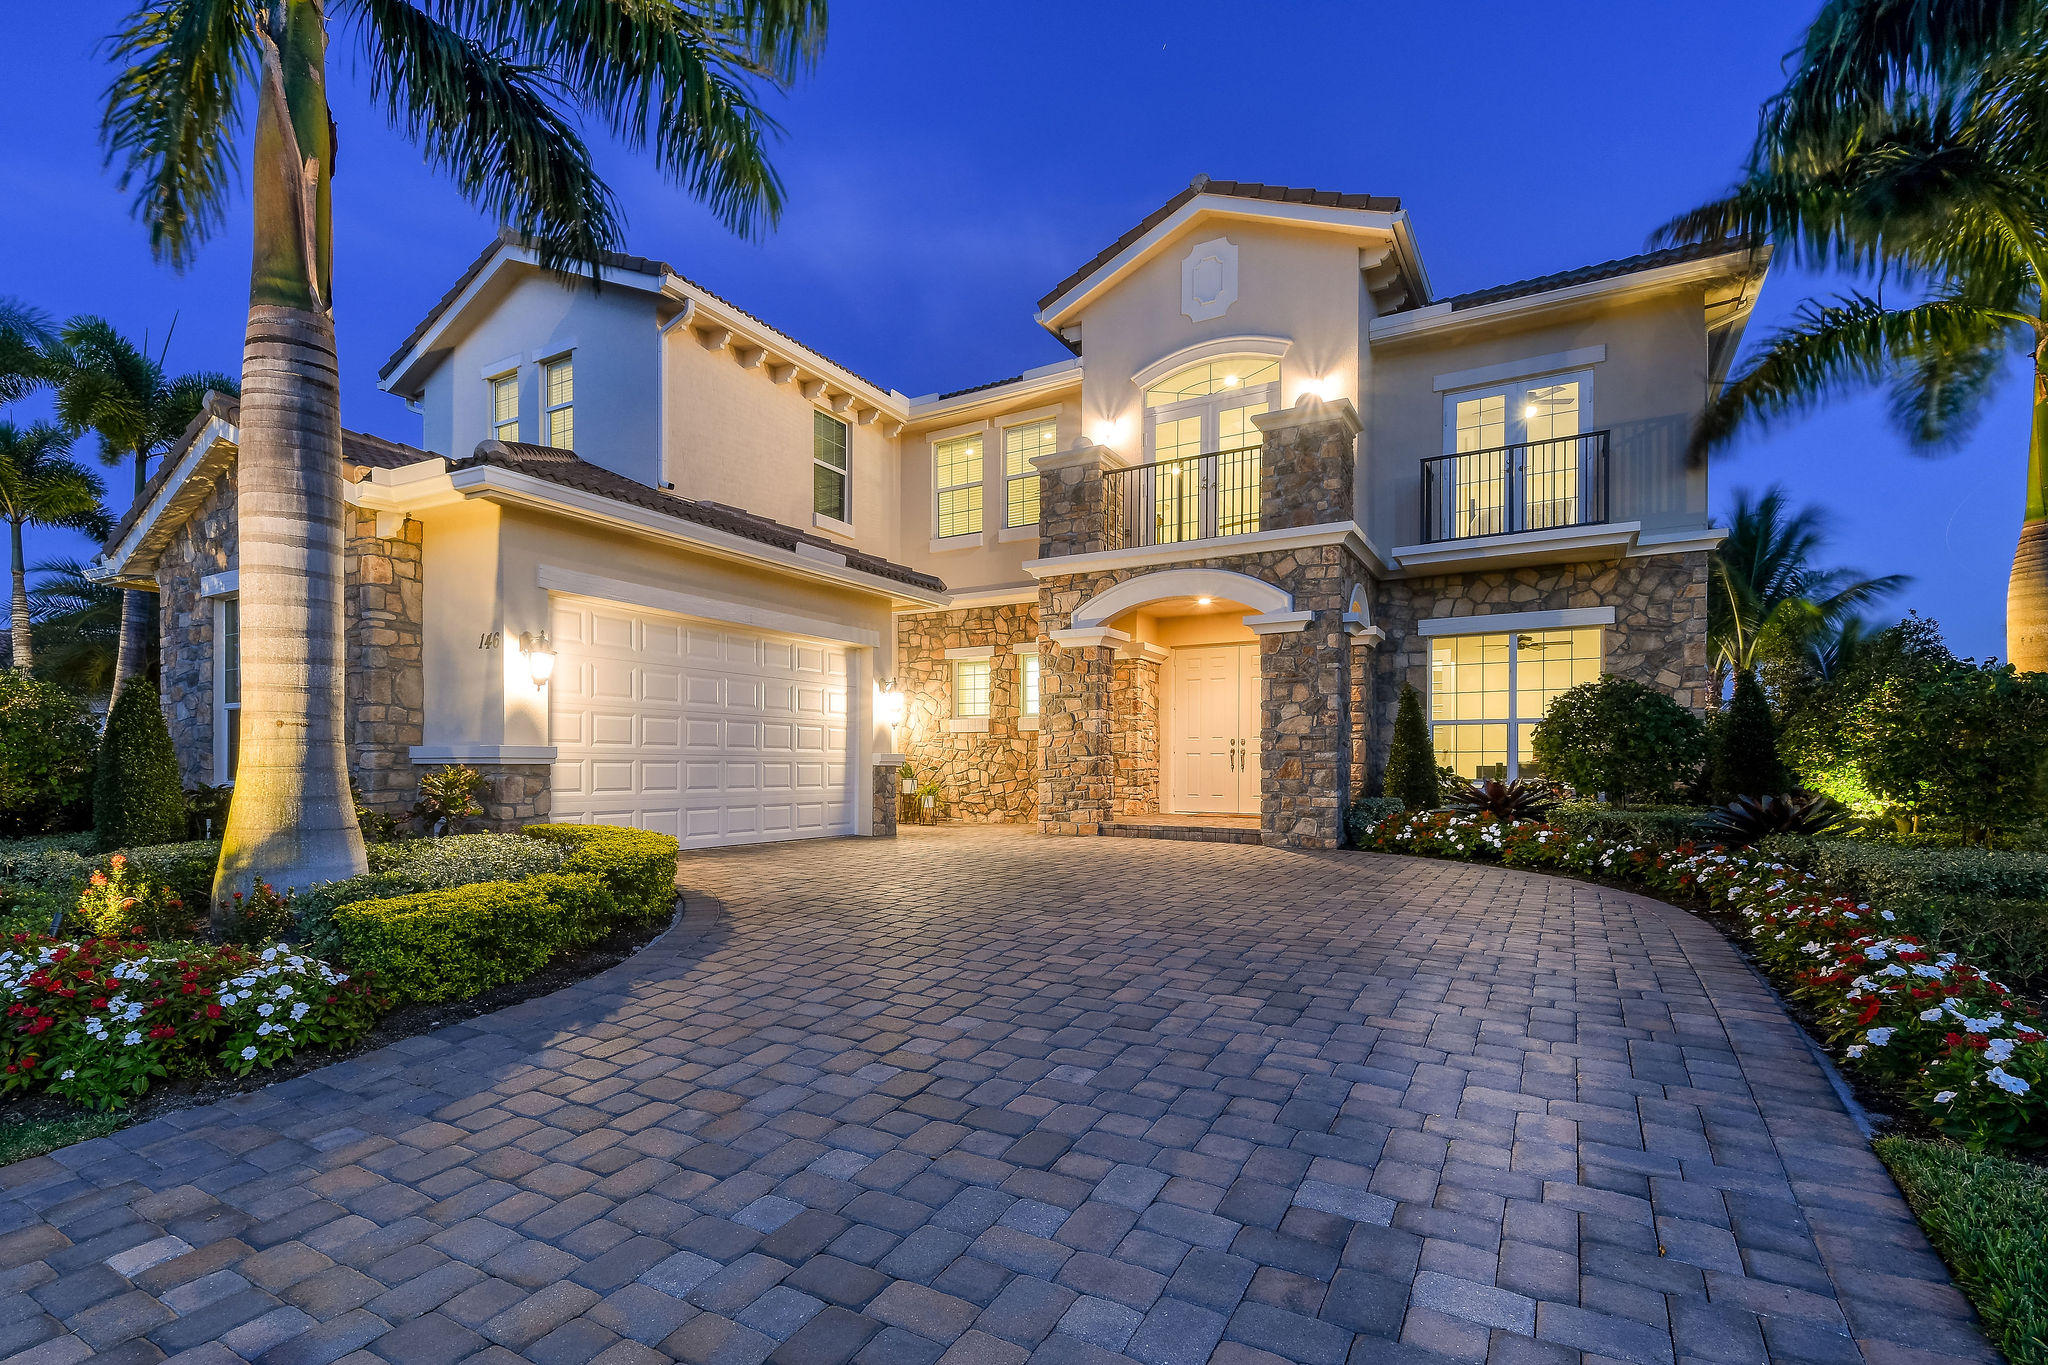 New Home for sale at 146 Sonata Drive in Jupiter